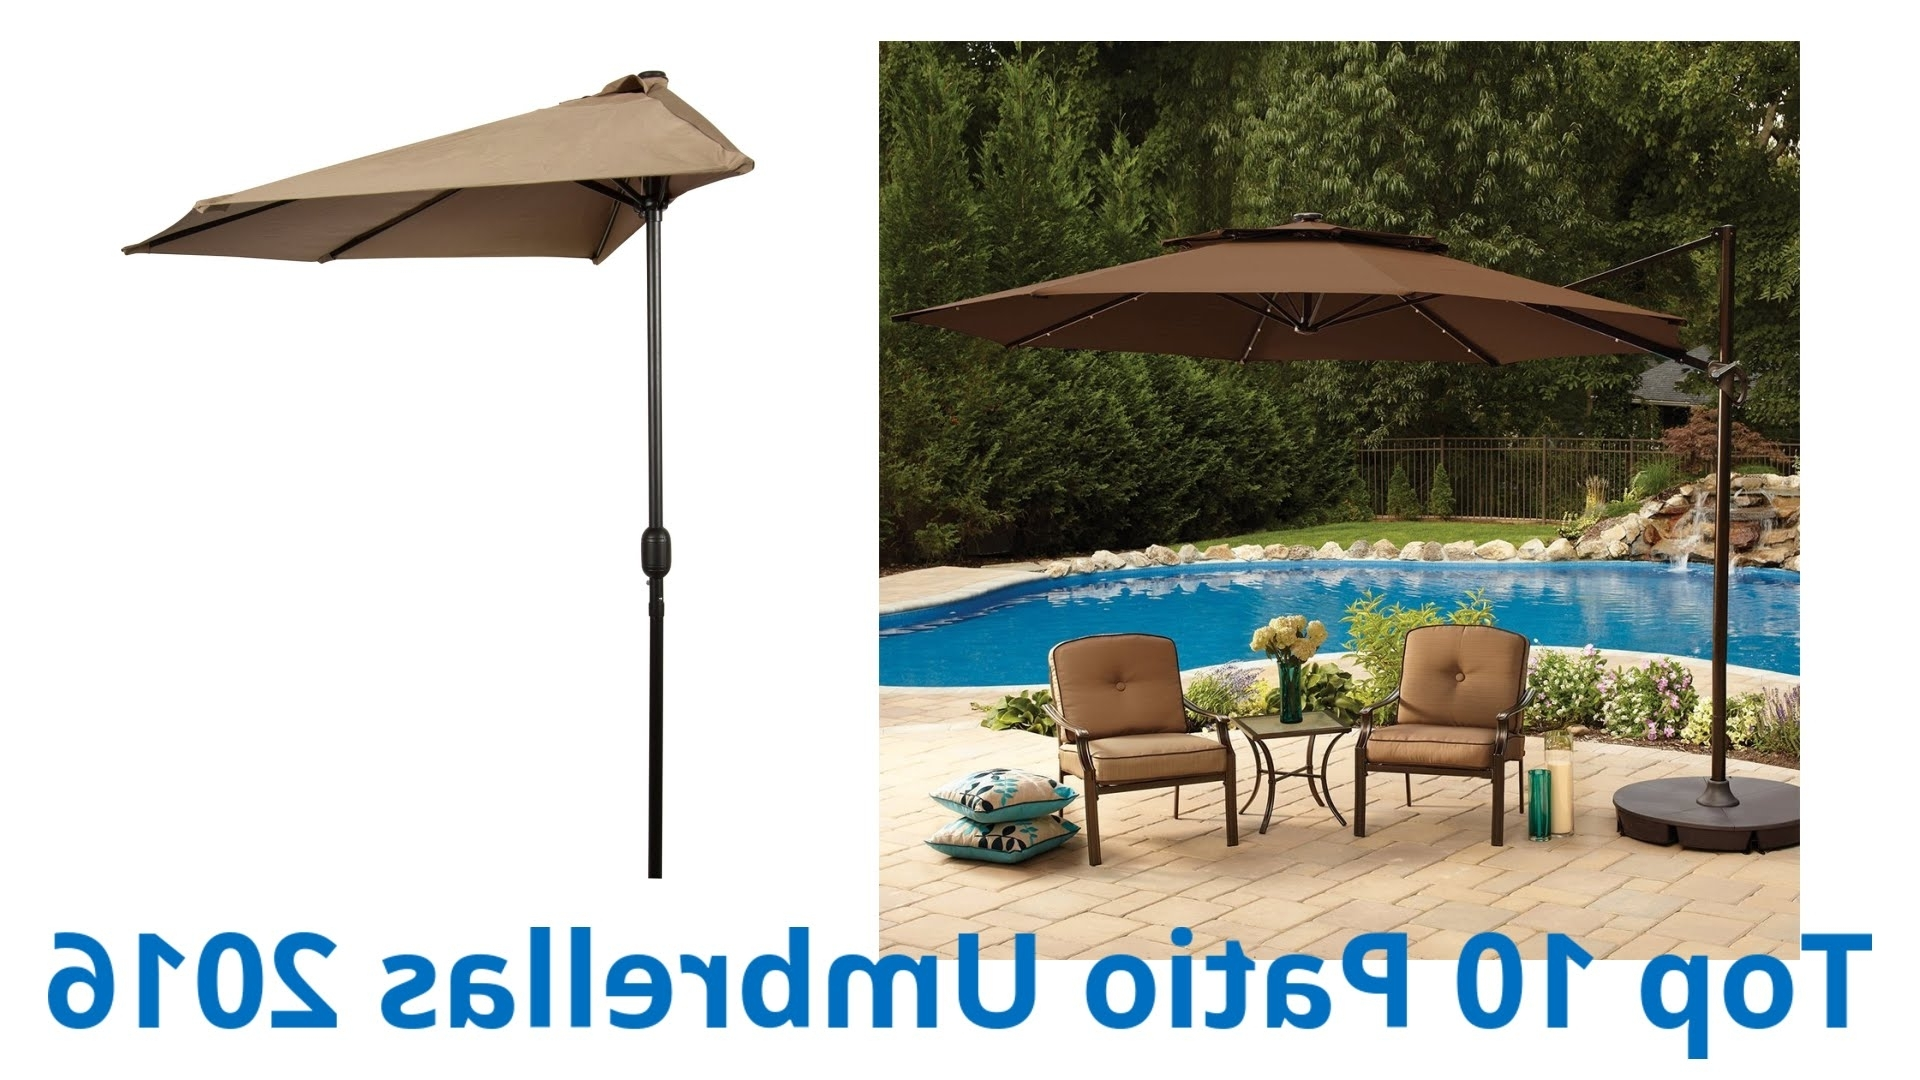 10 Best Patio Umbrellas 2016 – Youtube For Most Recently Released Patio Umbrellas For High Wind Areas (View 1 of 20)